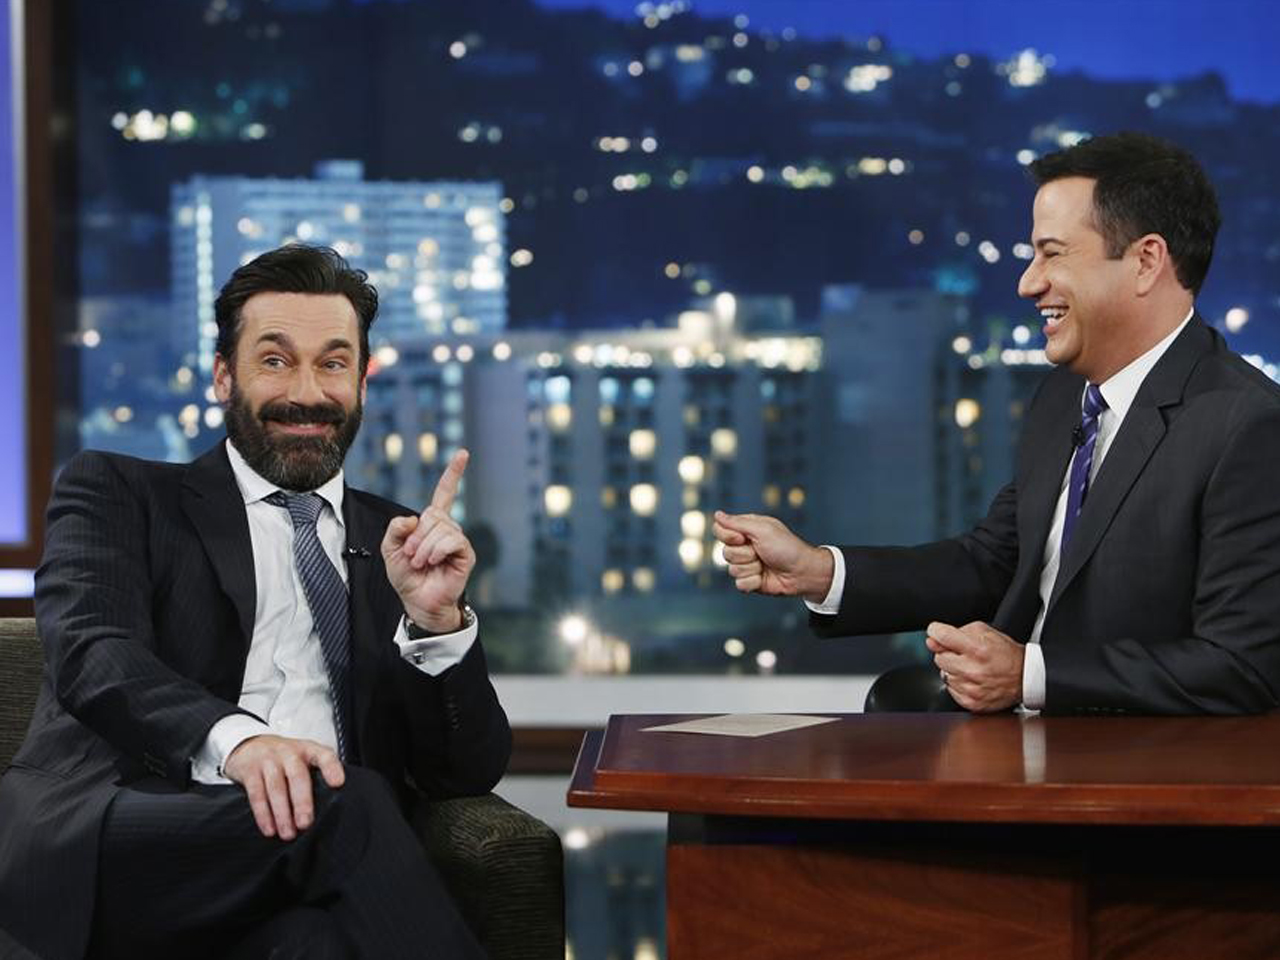 IMAGE: Jon Hamm and Jimmy Kimmel